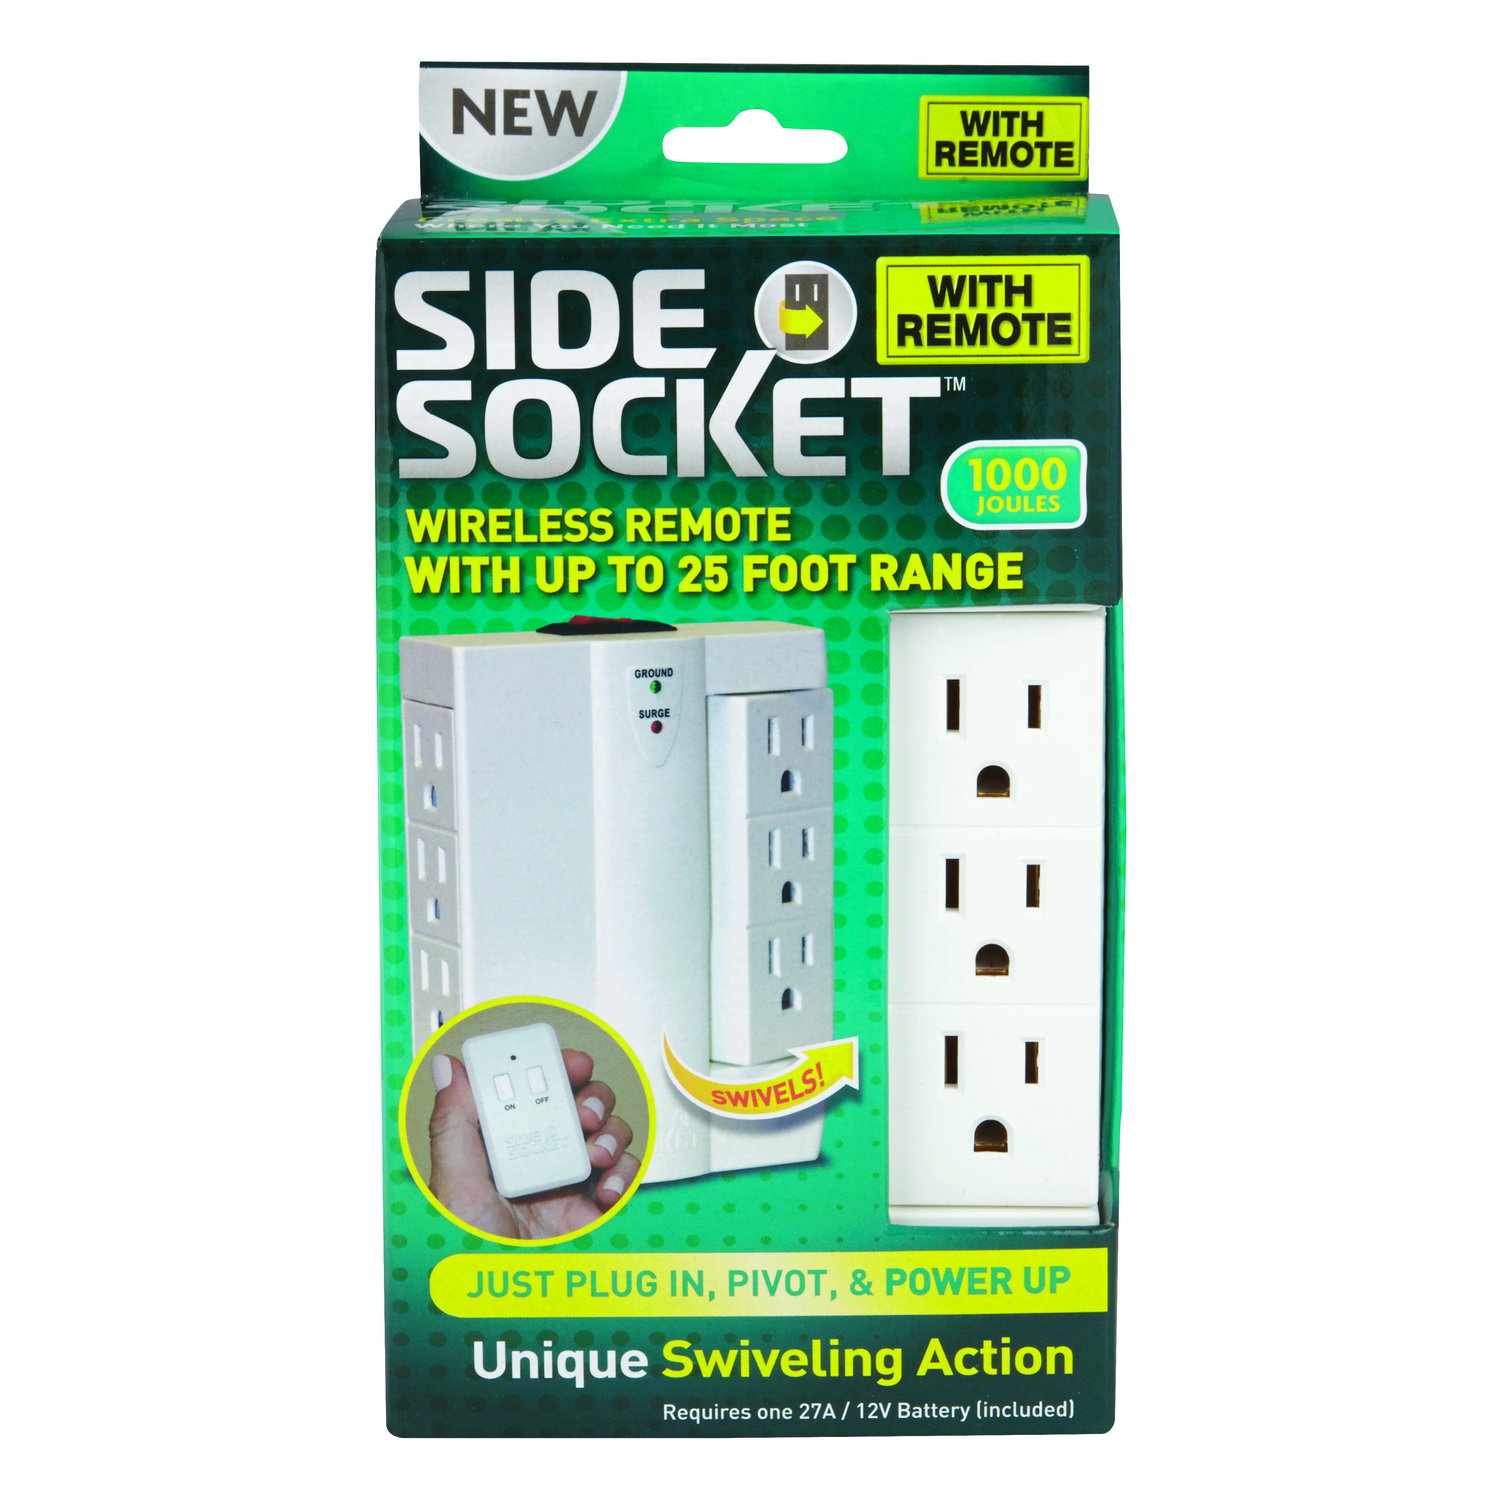 Side Socket Polarized 6 outlets Outlet Extender Surge Protection 1 ...